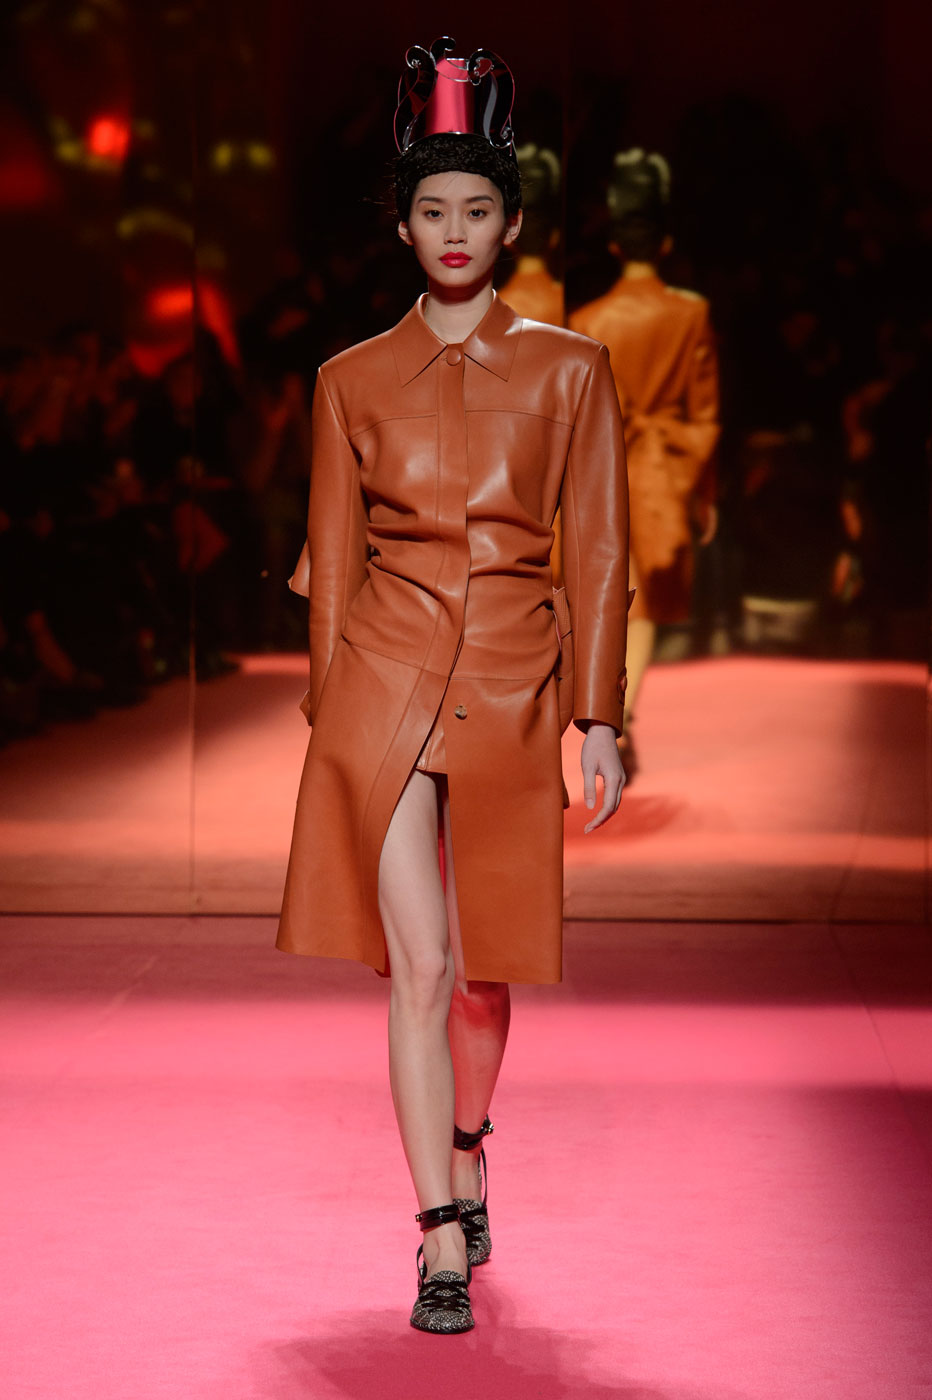 Schiaparelli-fashion-runway-show-haute-couture-paris-spring-summer-2015-the-impression-09